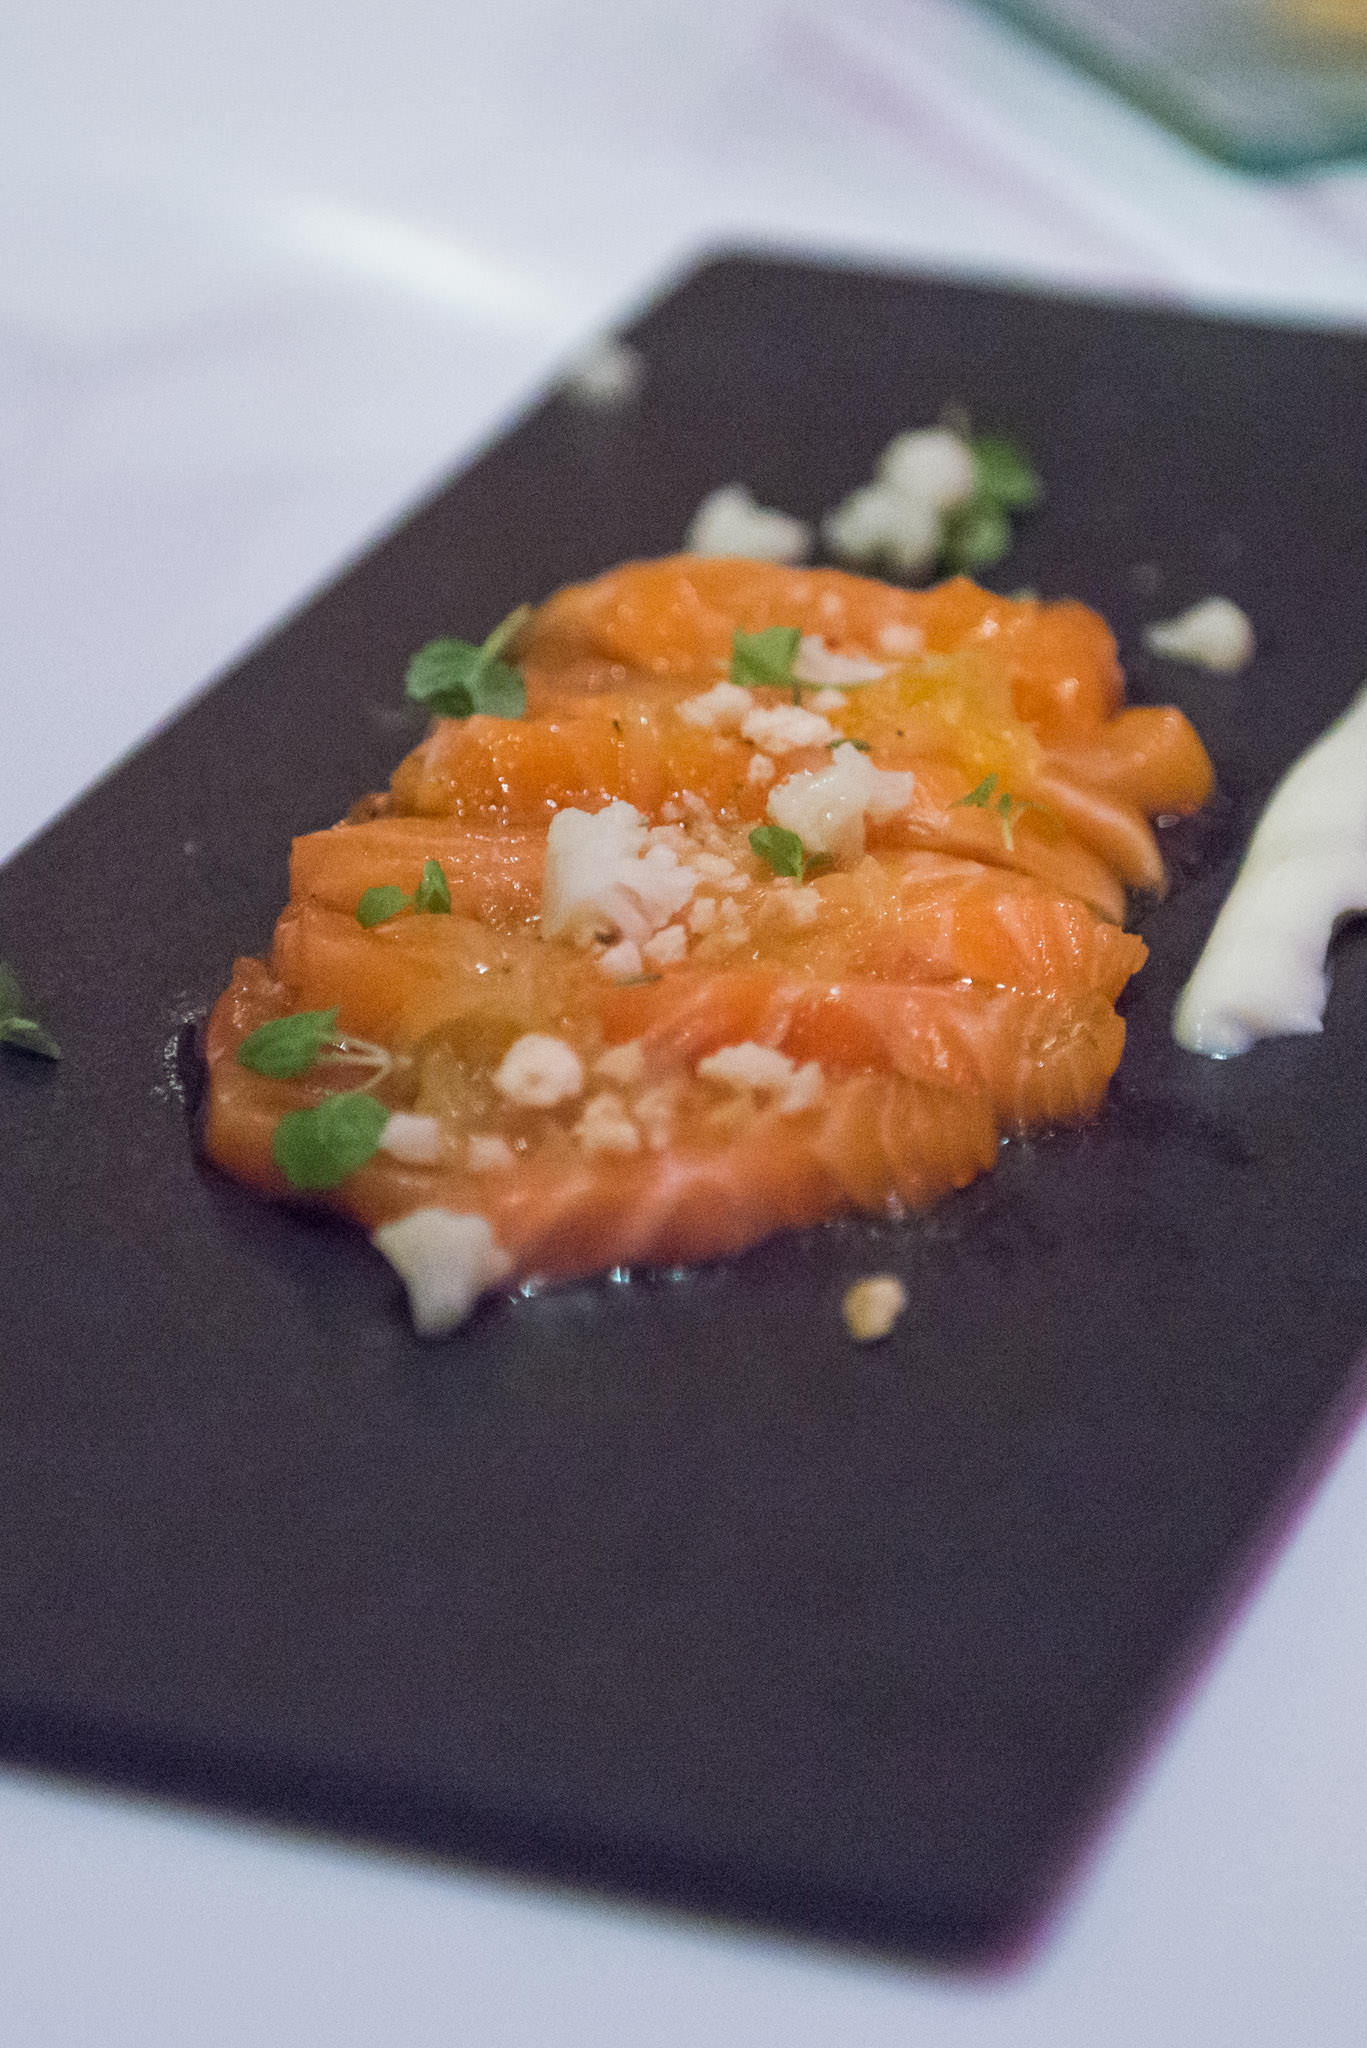 Cured Tasmanian salmon with cauliflower mousse and citrus dressing